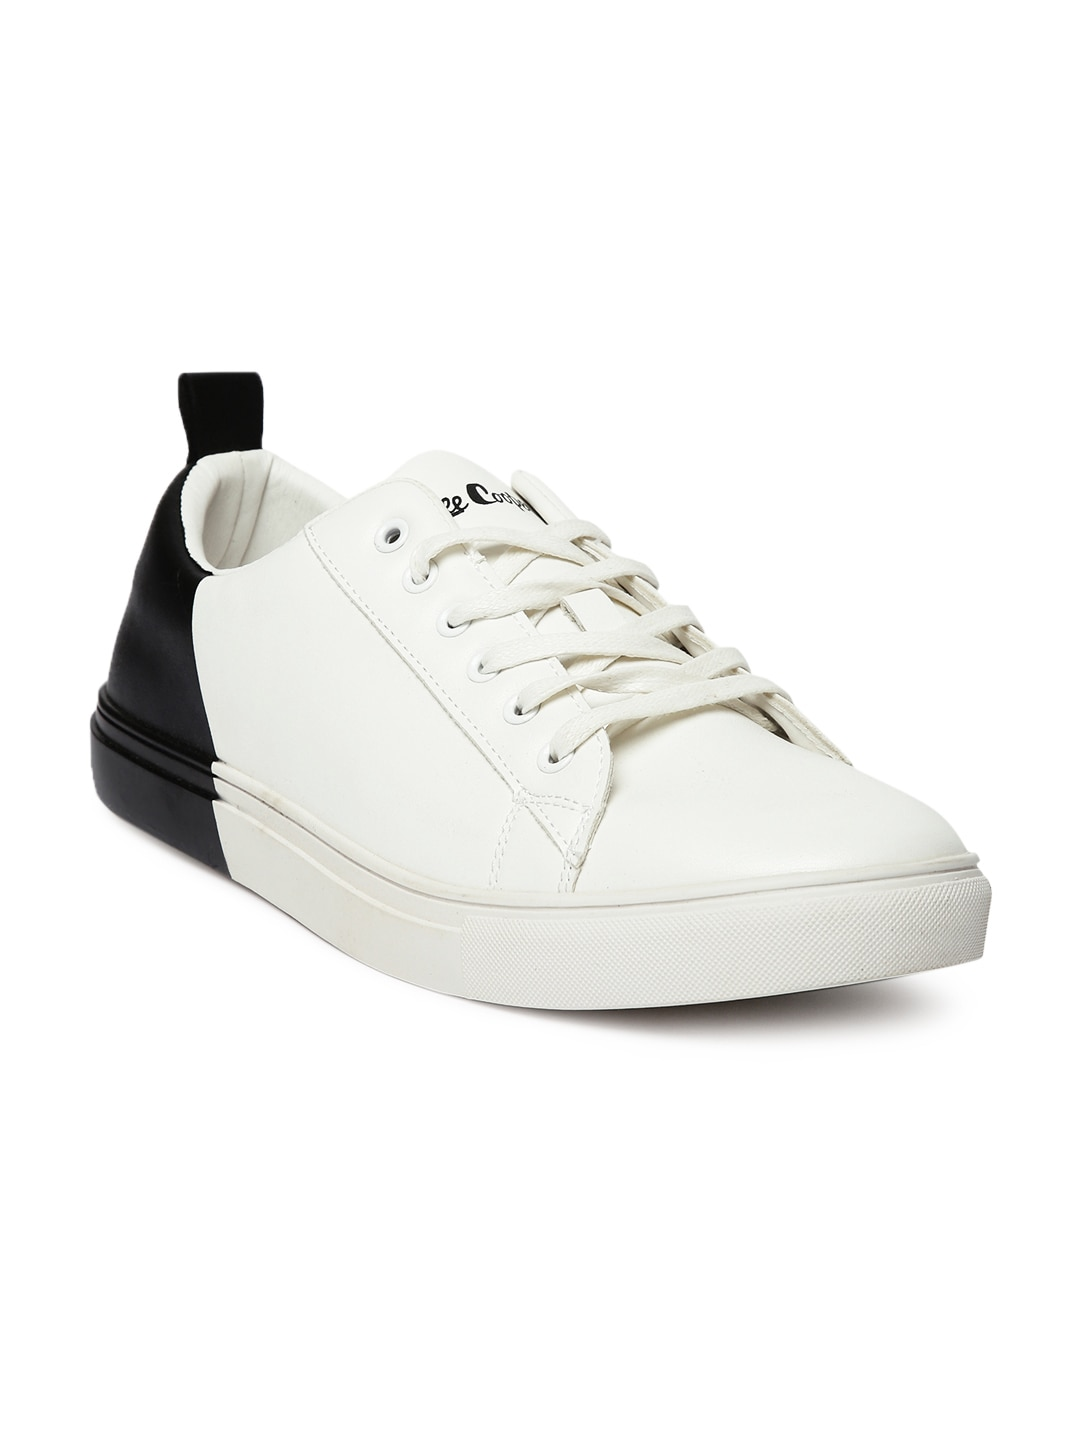 c14ca50aaf5c Lee Cooper Shoes - Shop for Lee Cooper Shoes Online